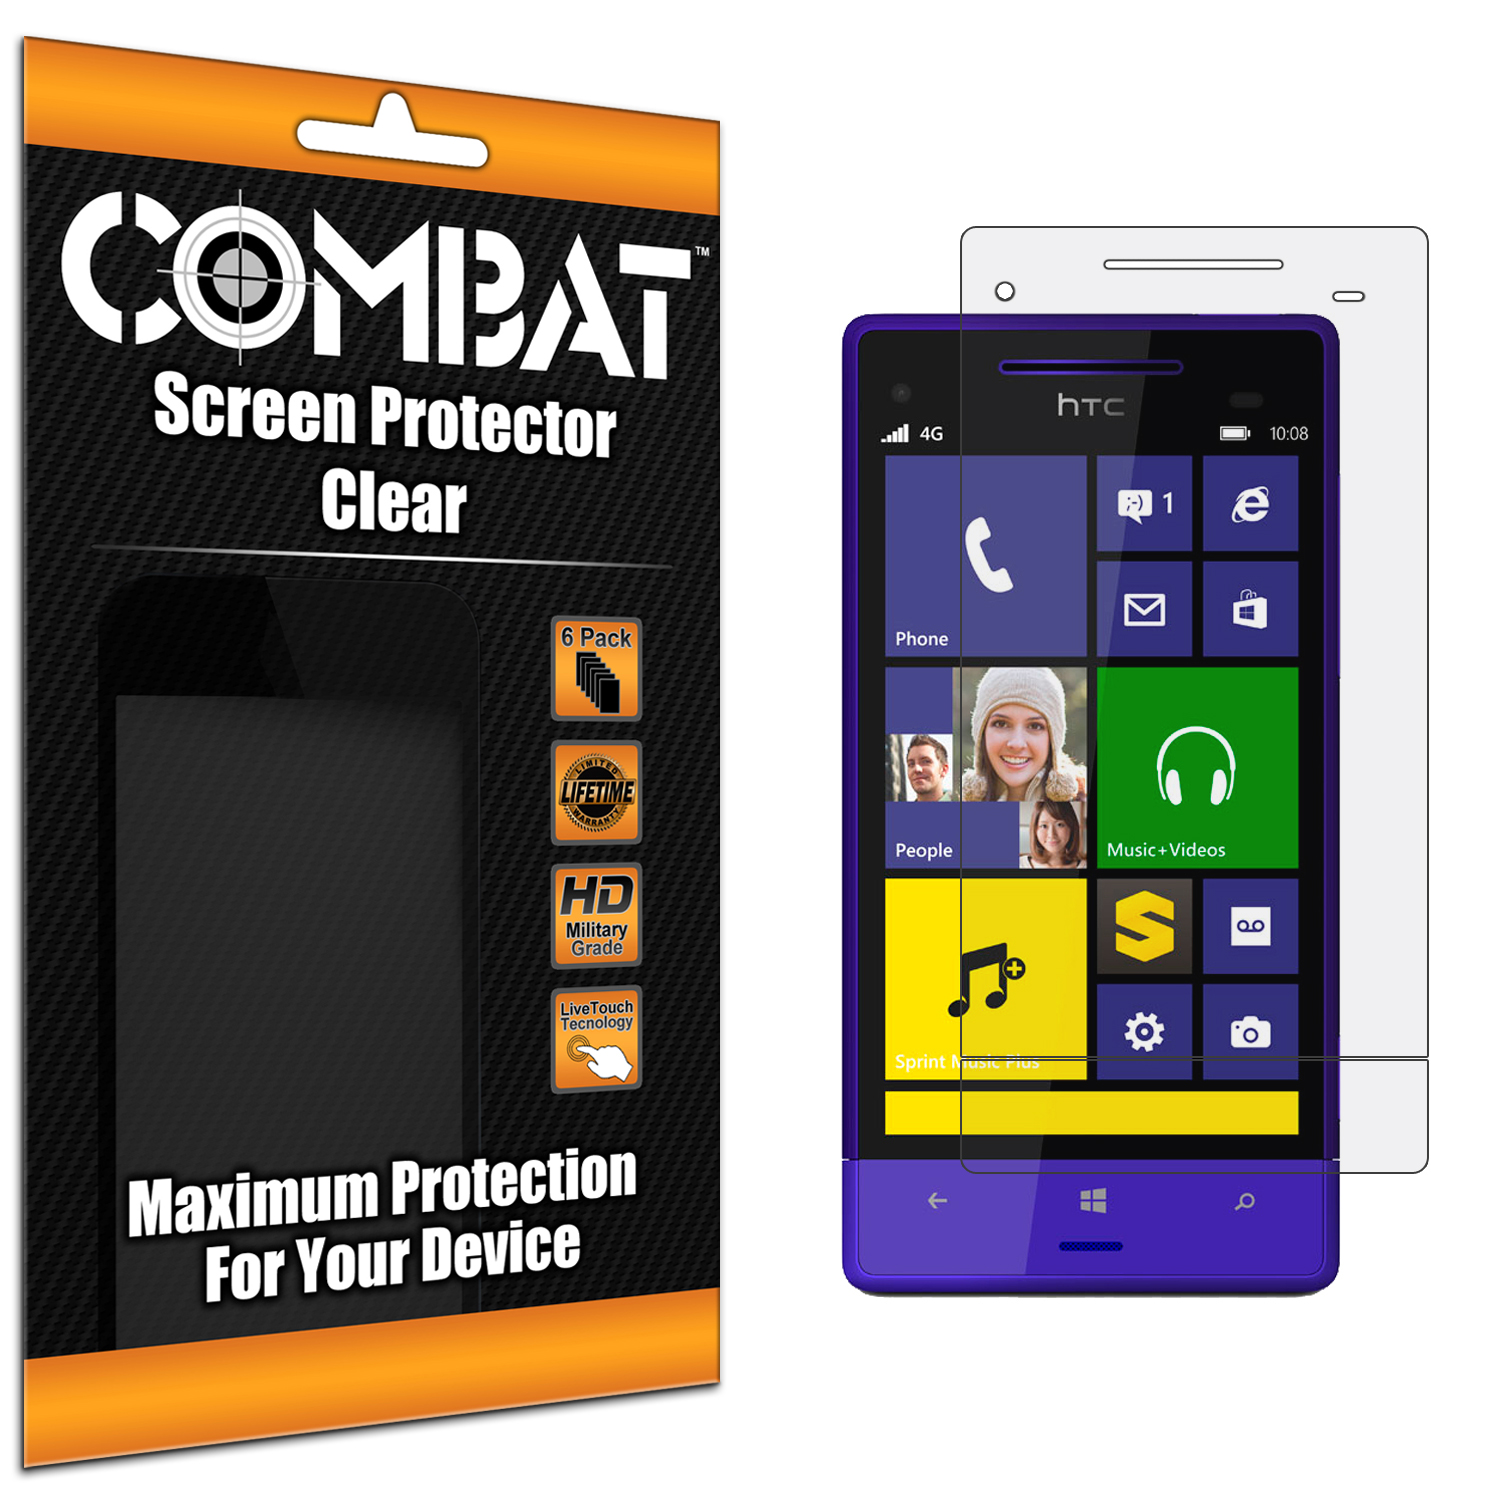 HTC 8XT Combat 6 Pack HD Clear Screen Protector